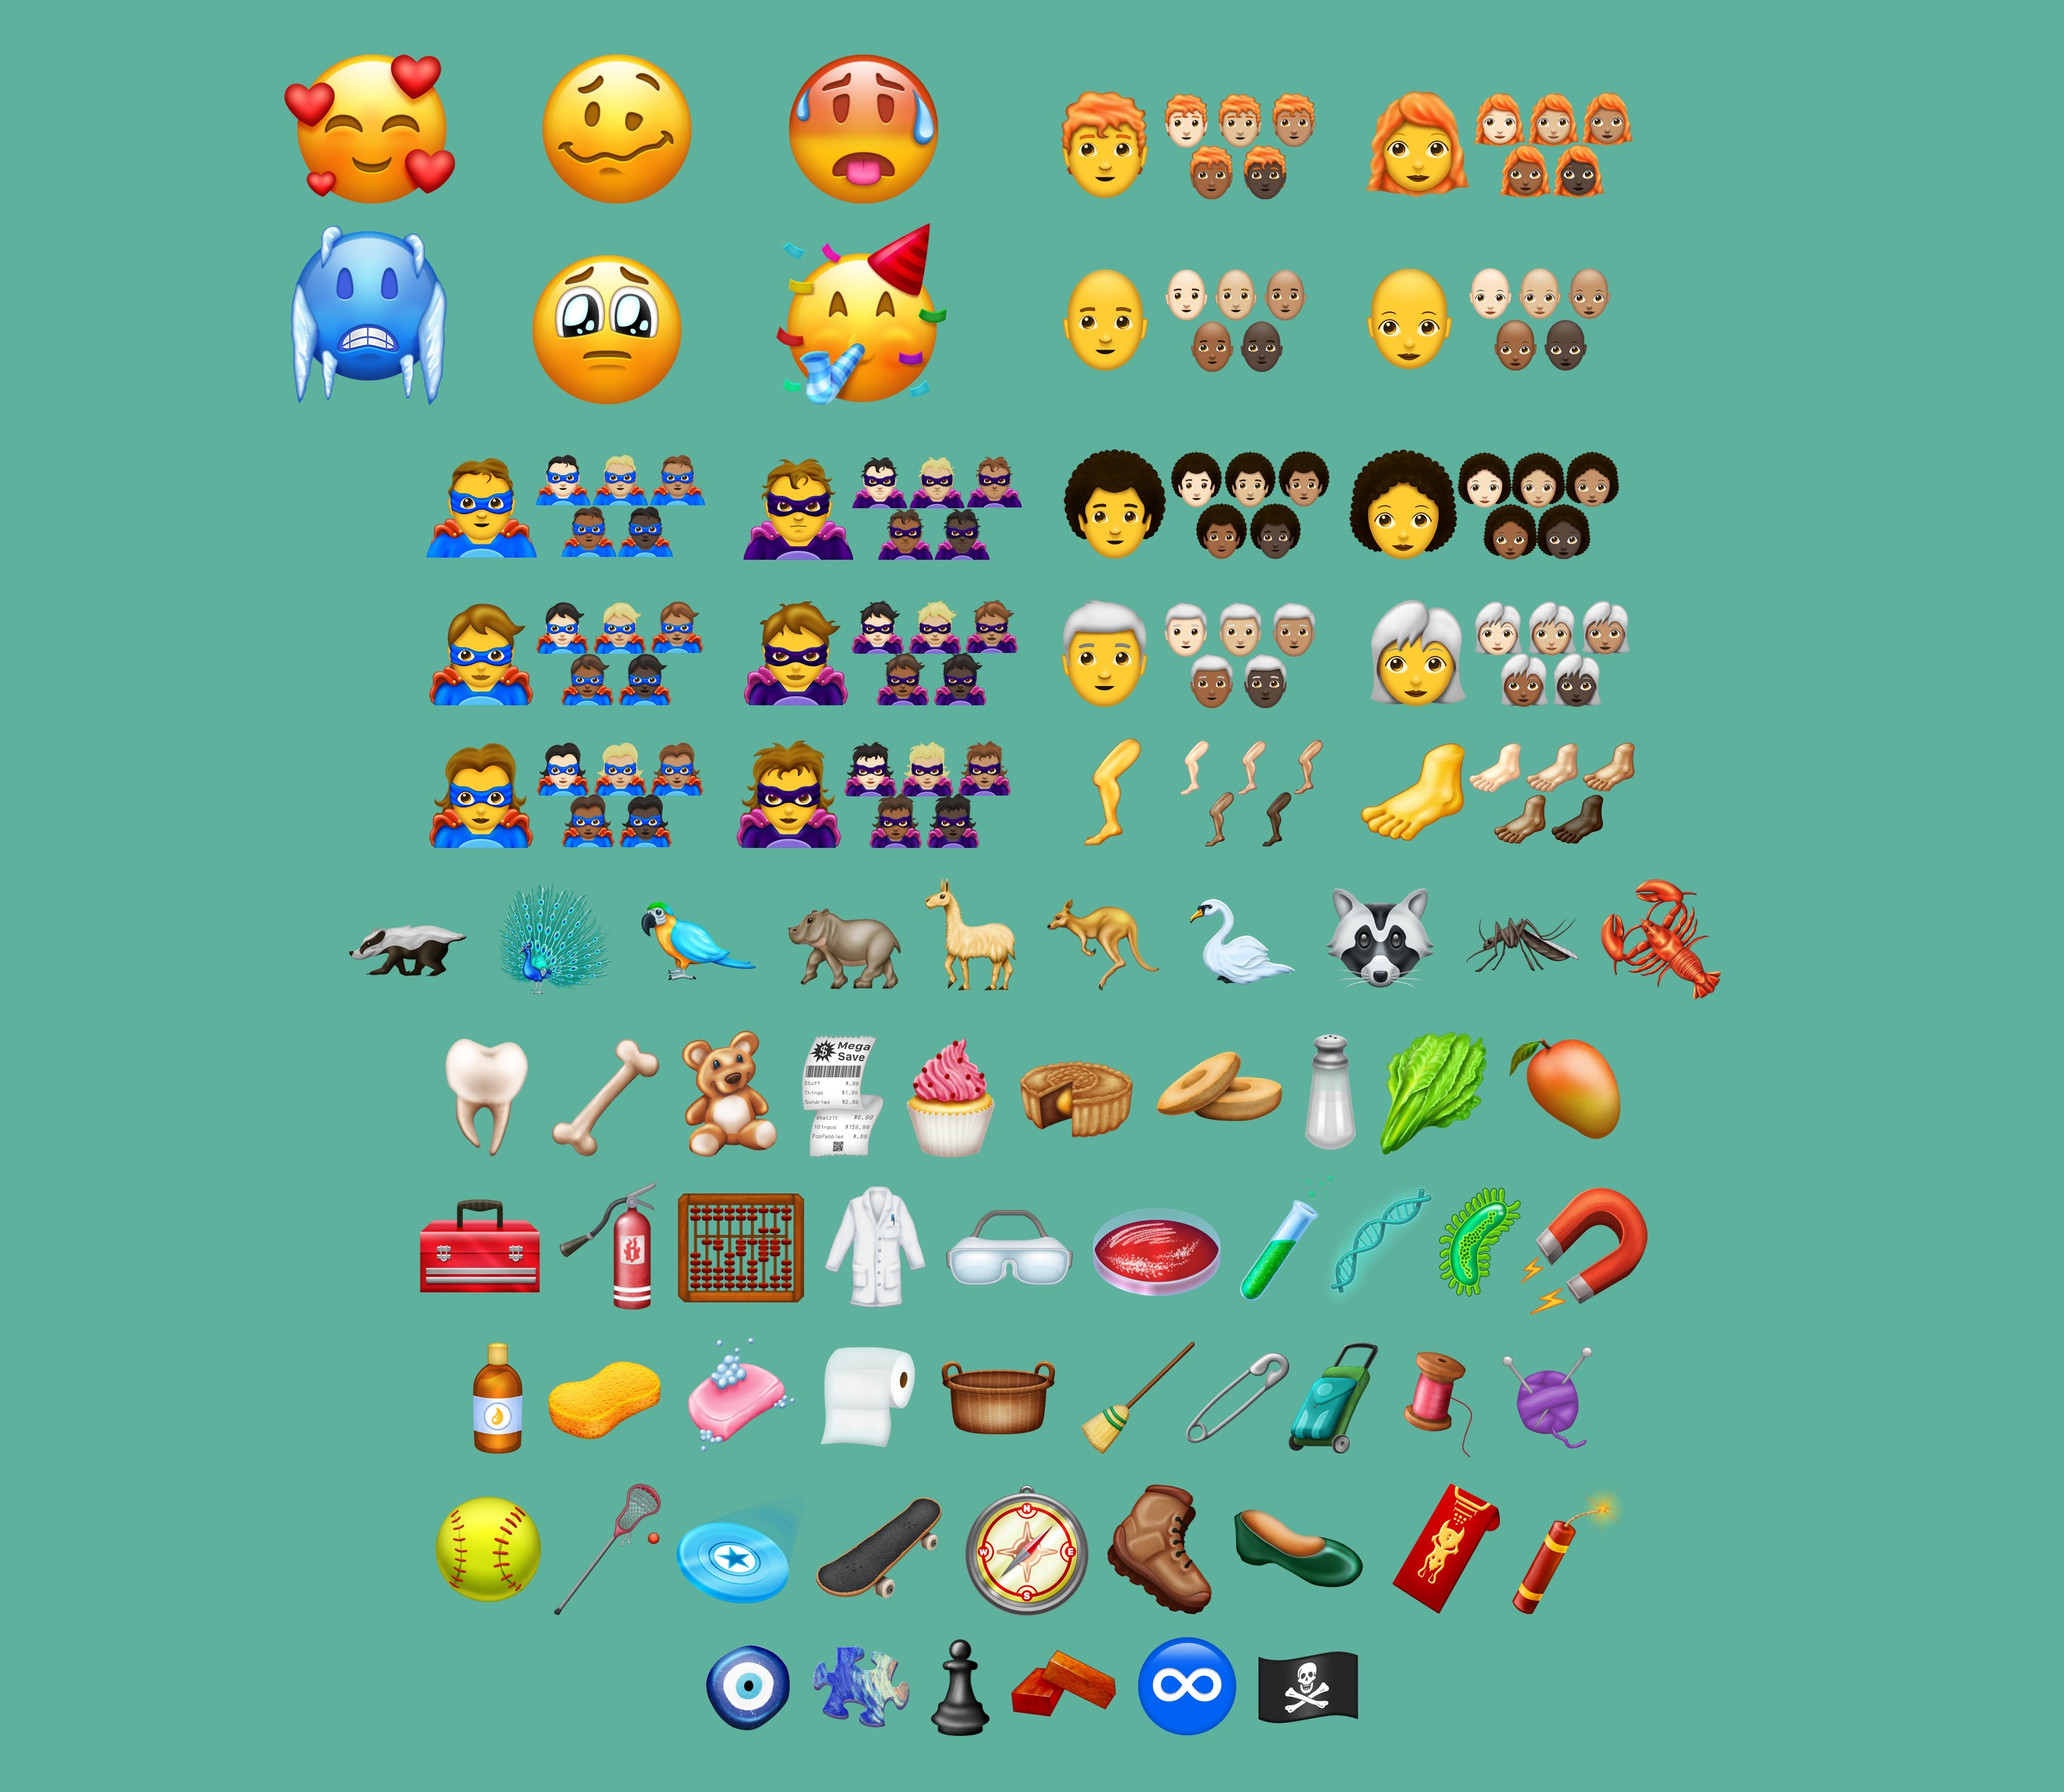 157 New Emojis in the 2018 Emoji List